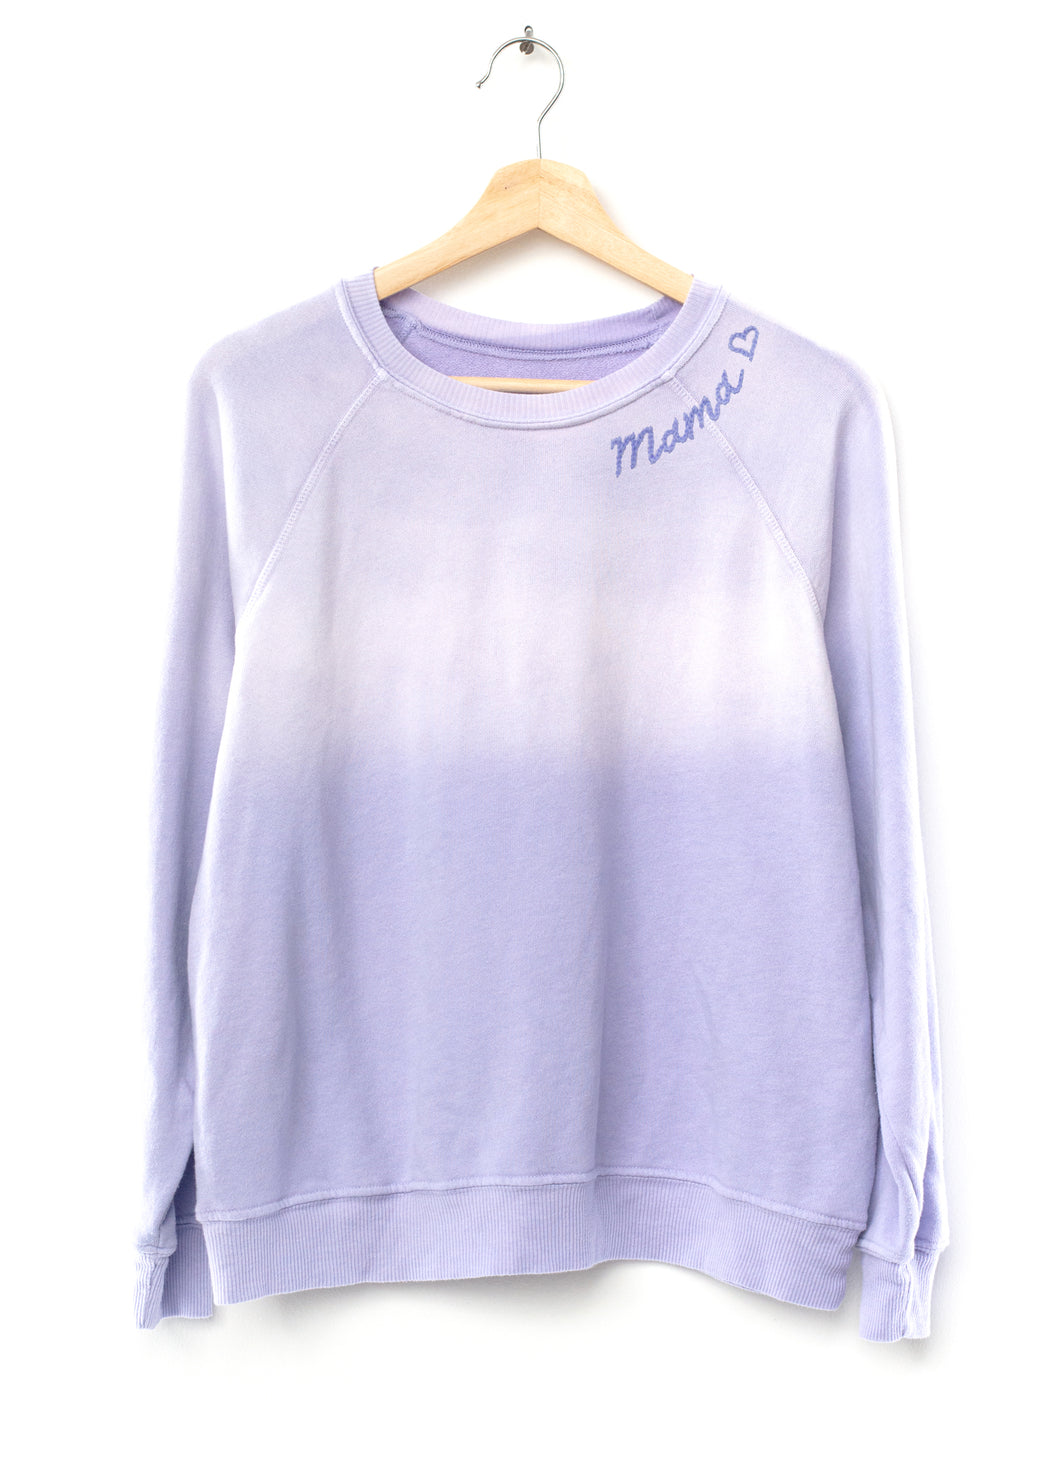 PASTEL SNOW LAVENDER SWEATS WITH CUSTOM HAND EMBROIDERY